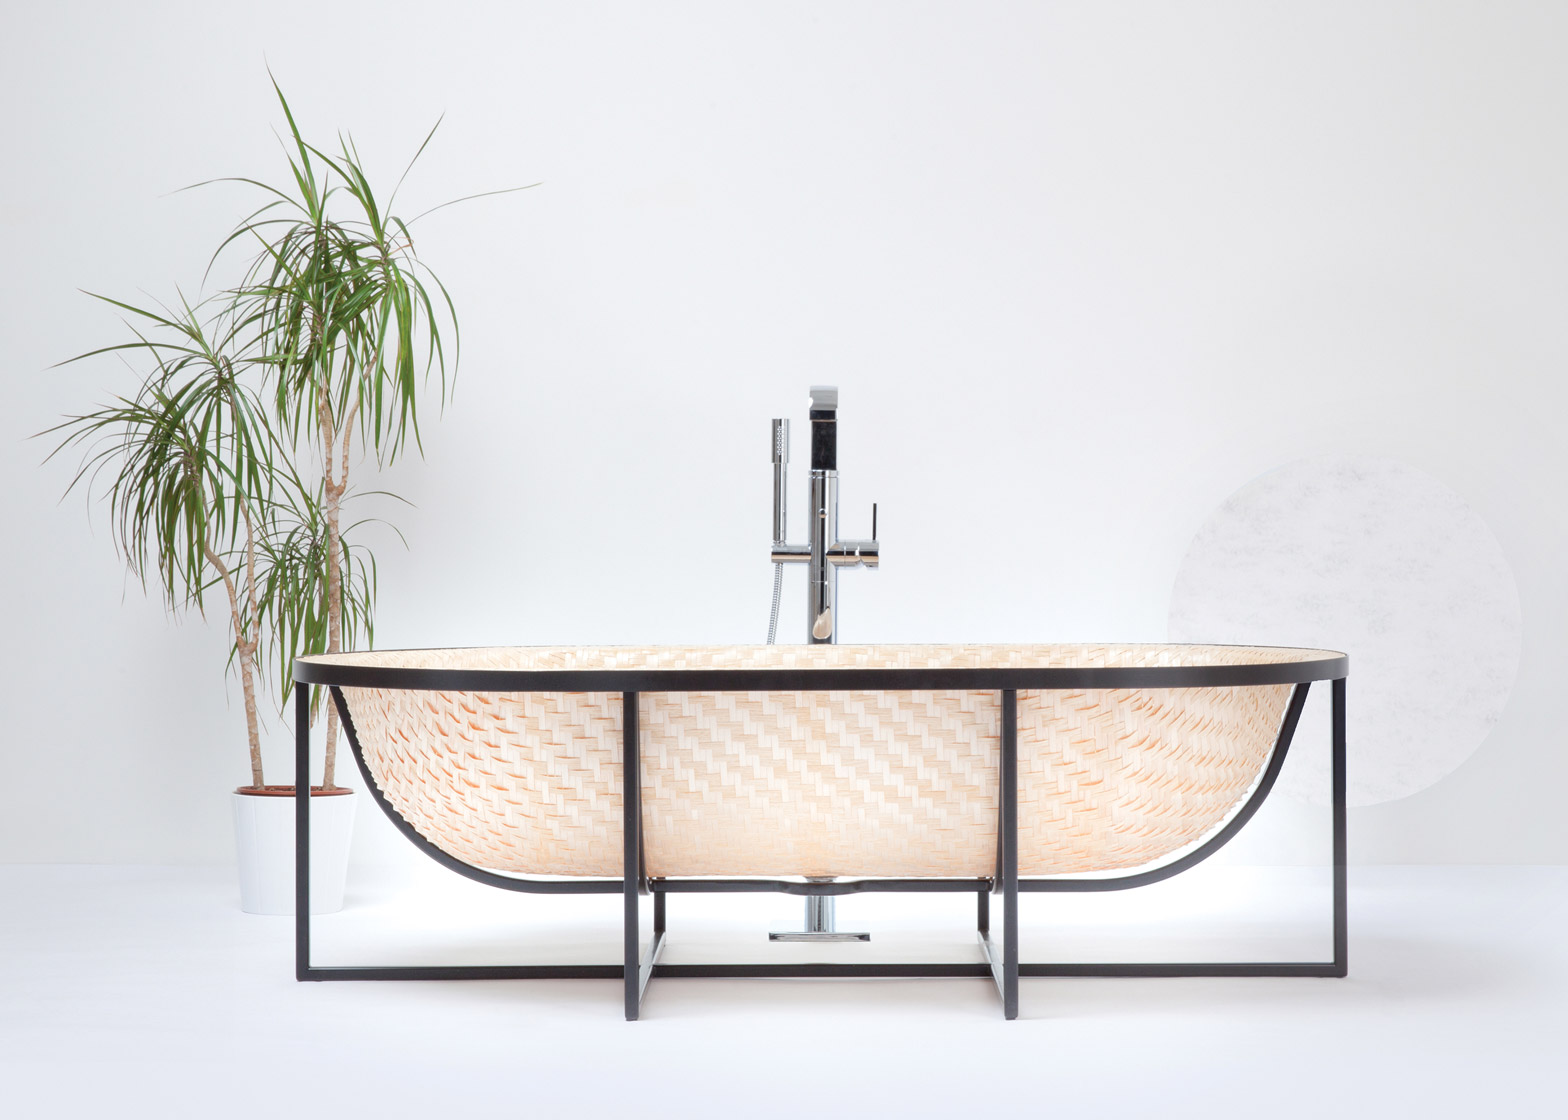 Tal Engel\'s Otaku bathtub is woven from wood